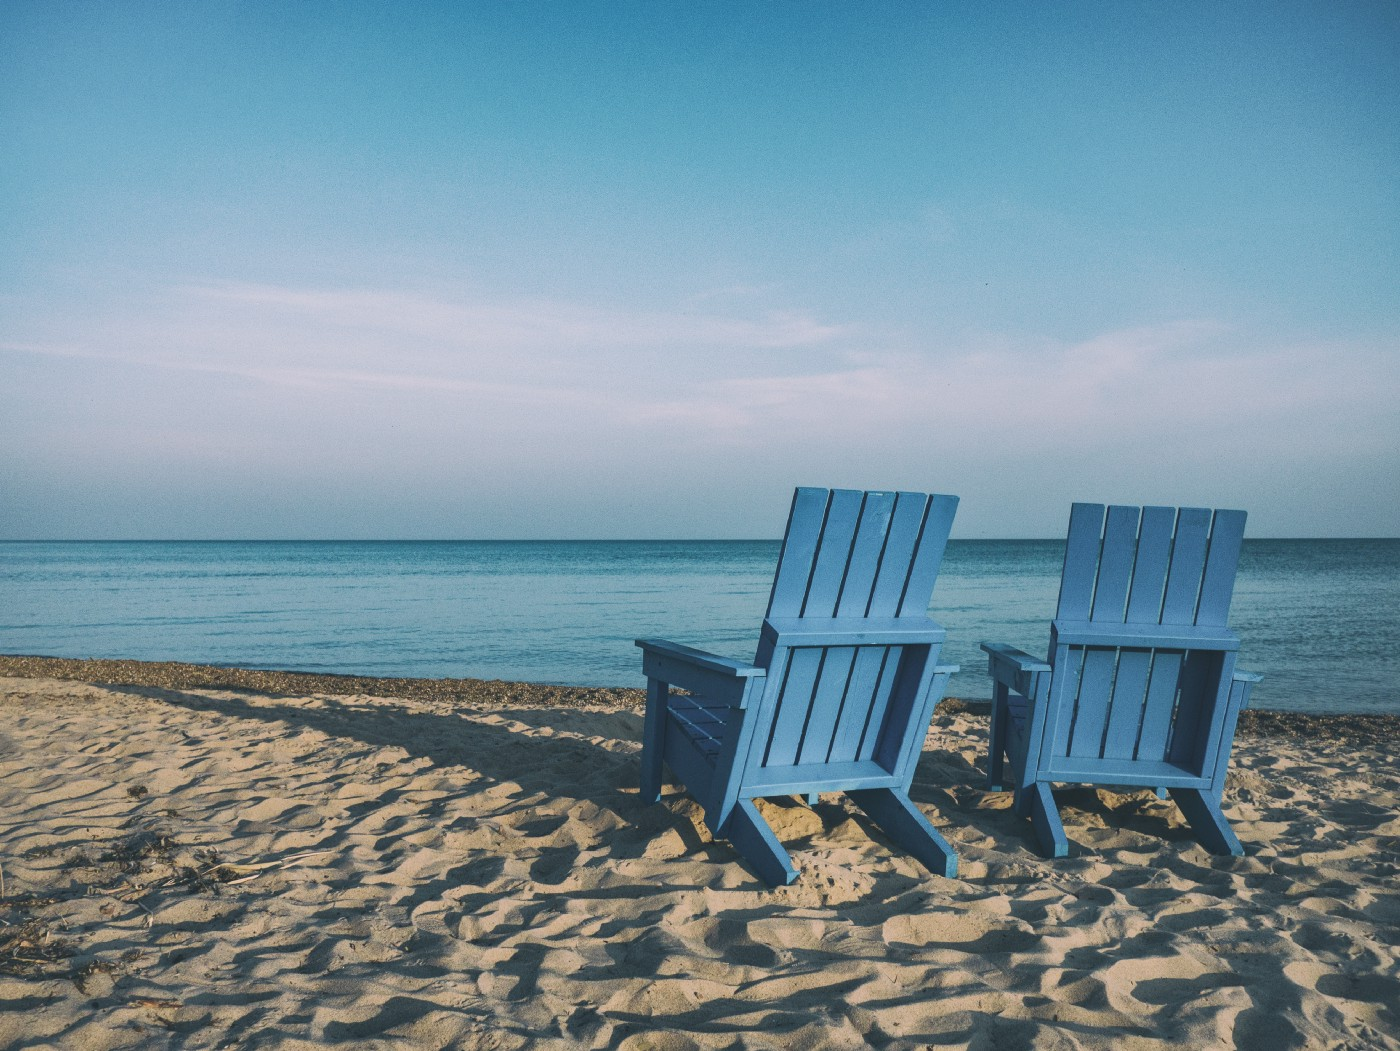 Two blue beach chairs sitting on beach empty. They face the ocean.